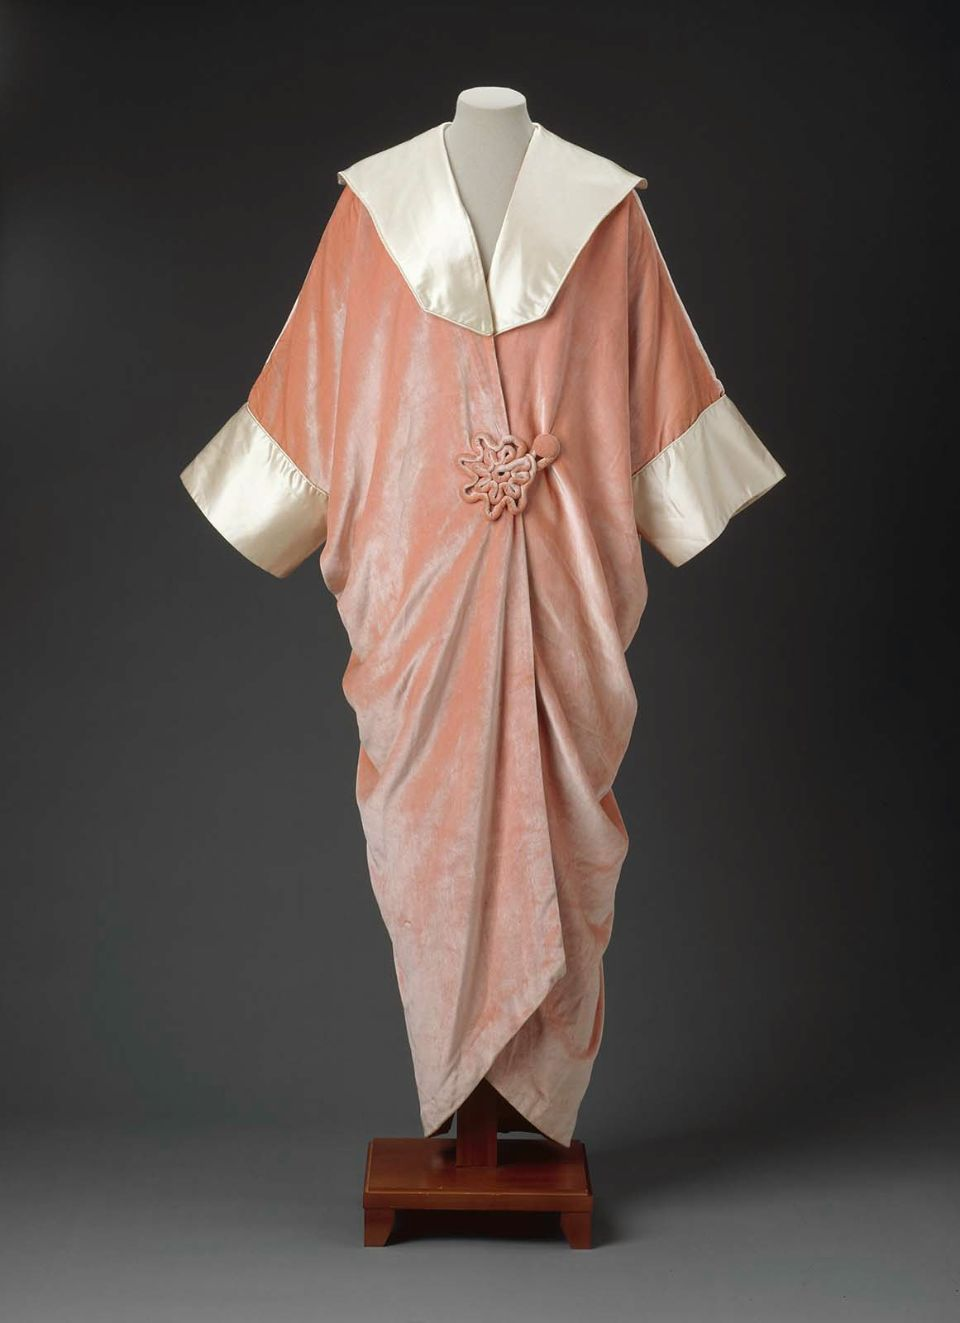 Evening coat. Jean-Philippe Worth, 1910–20. Coral pink velvet with satin collar and cuffs, coral pink silk satin lining. Loose kimono shape gathered in back and secured with pink corded velvet rosette; rosette also at front opening.